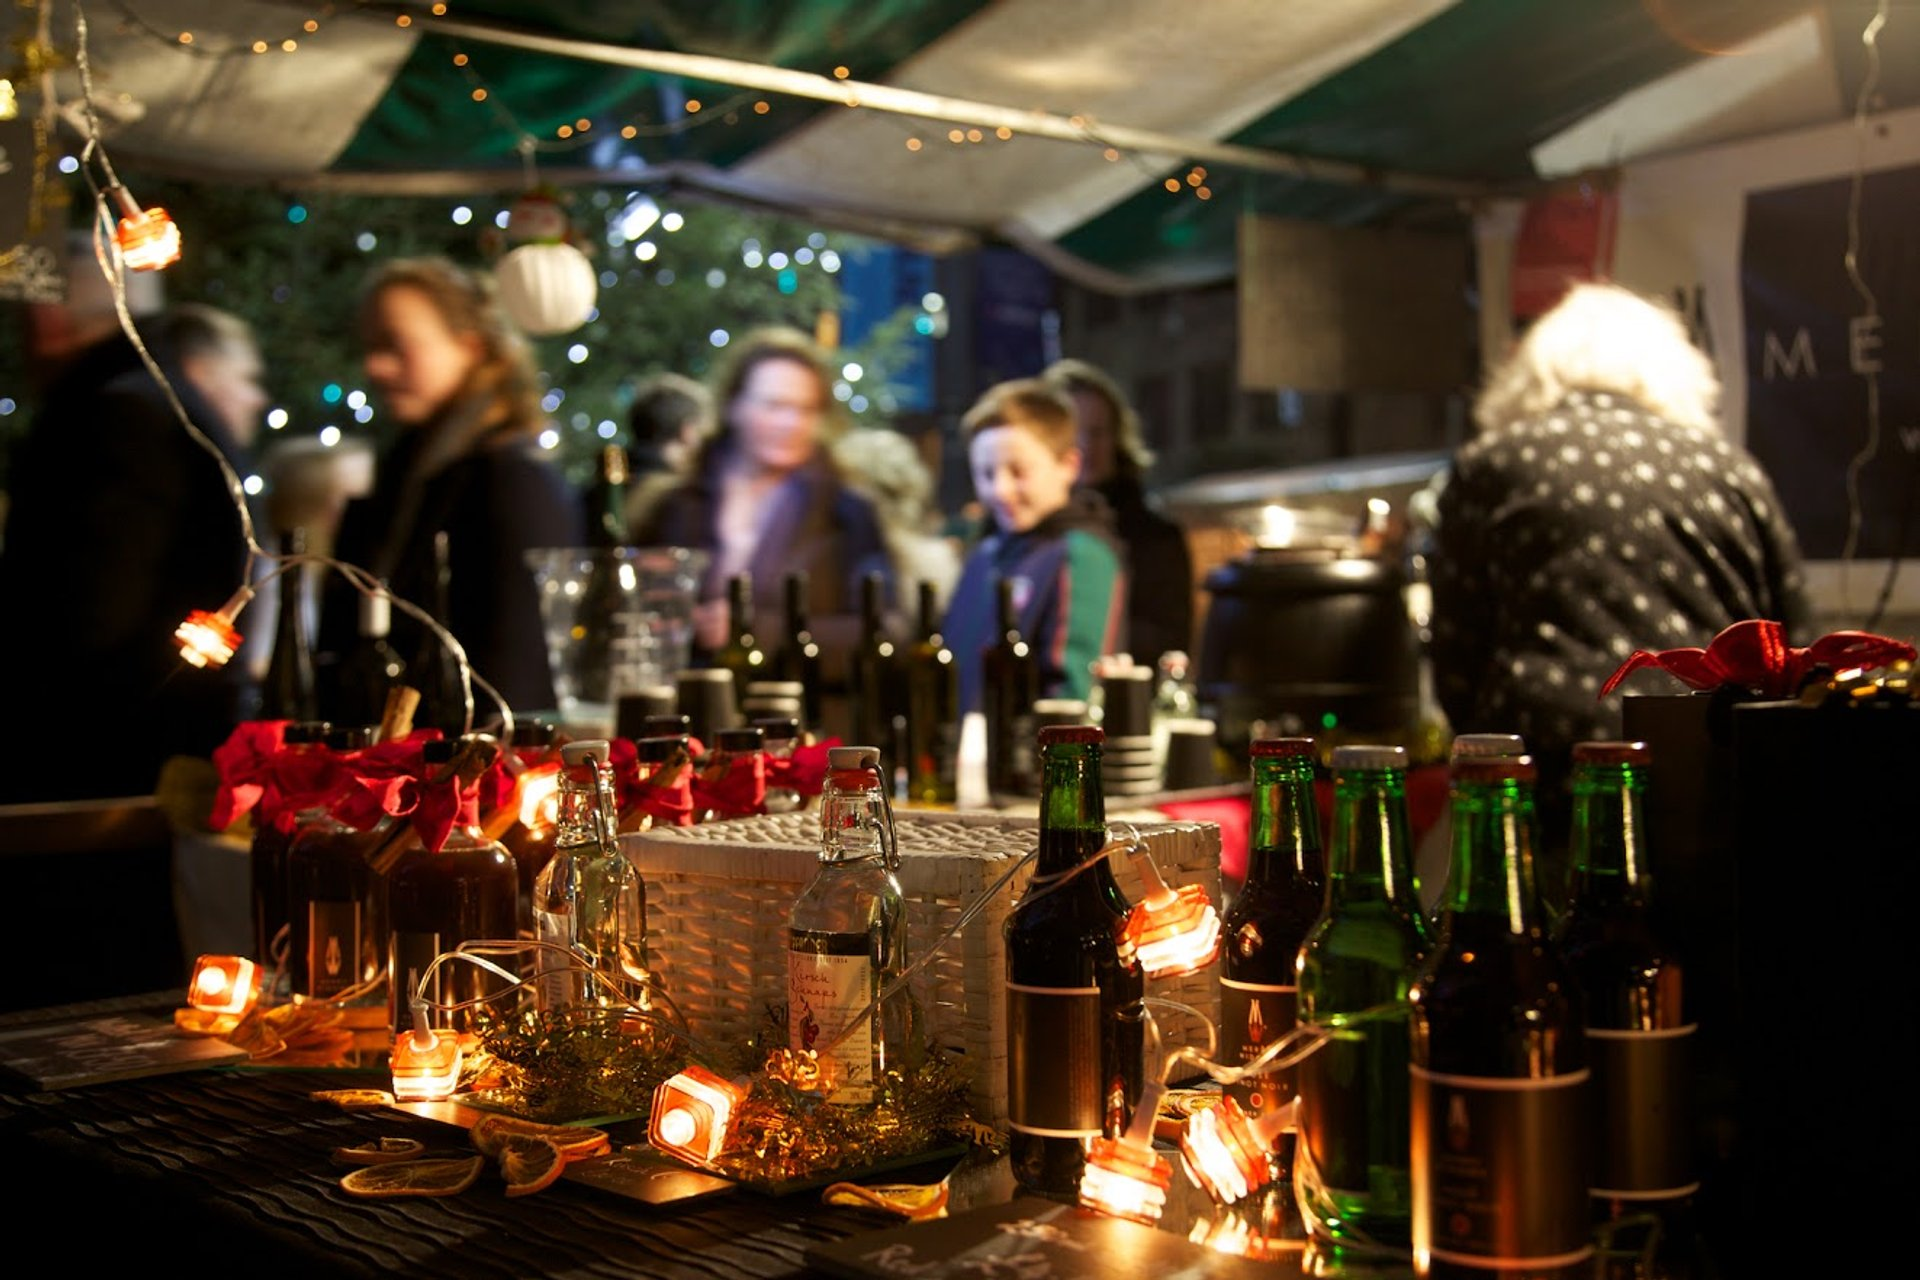 Southbank Centre Winter Market in London 2020 - Best Time